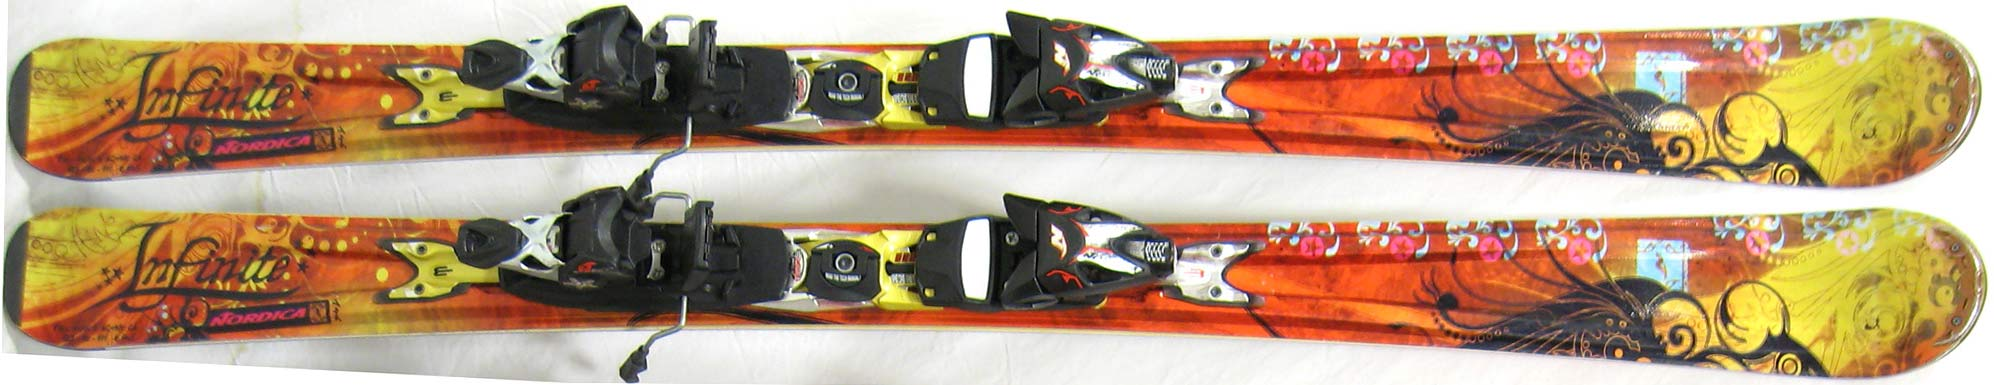 Topsheets of 2011 Nordica Infinite Skis For Sale